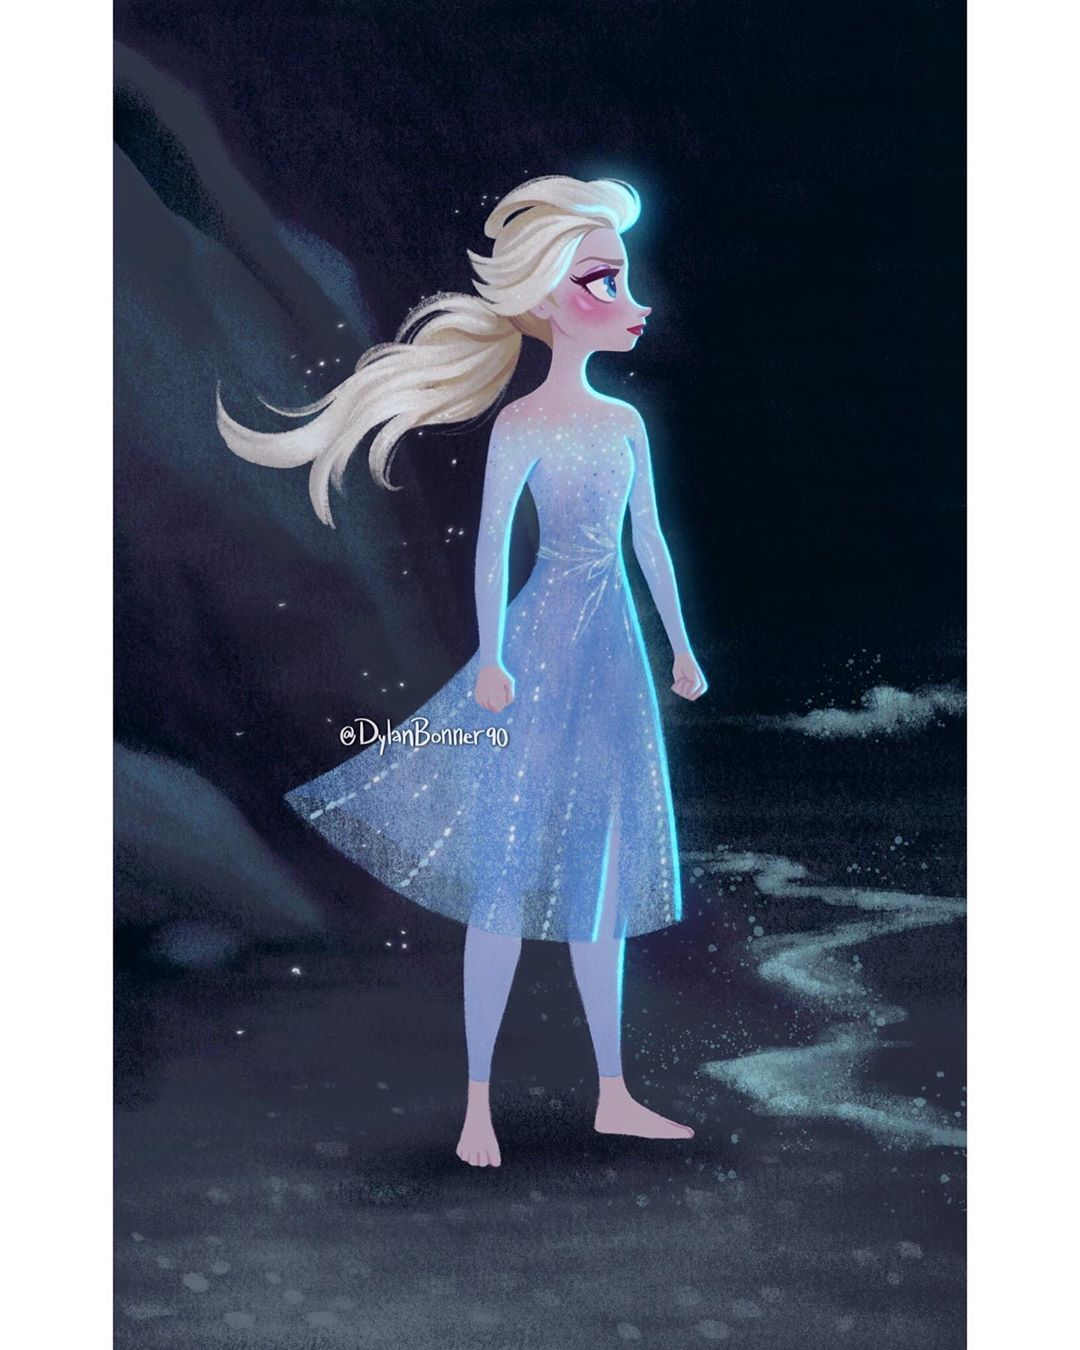 Pin On Frozen 2 Contains Spoilers